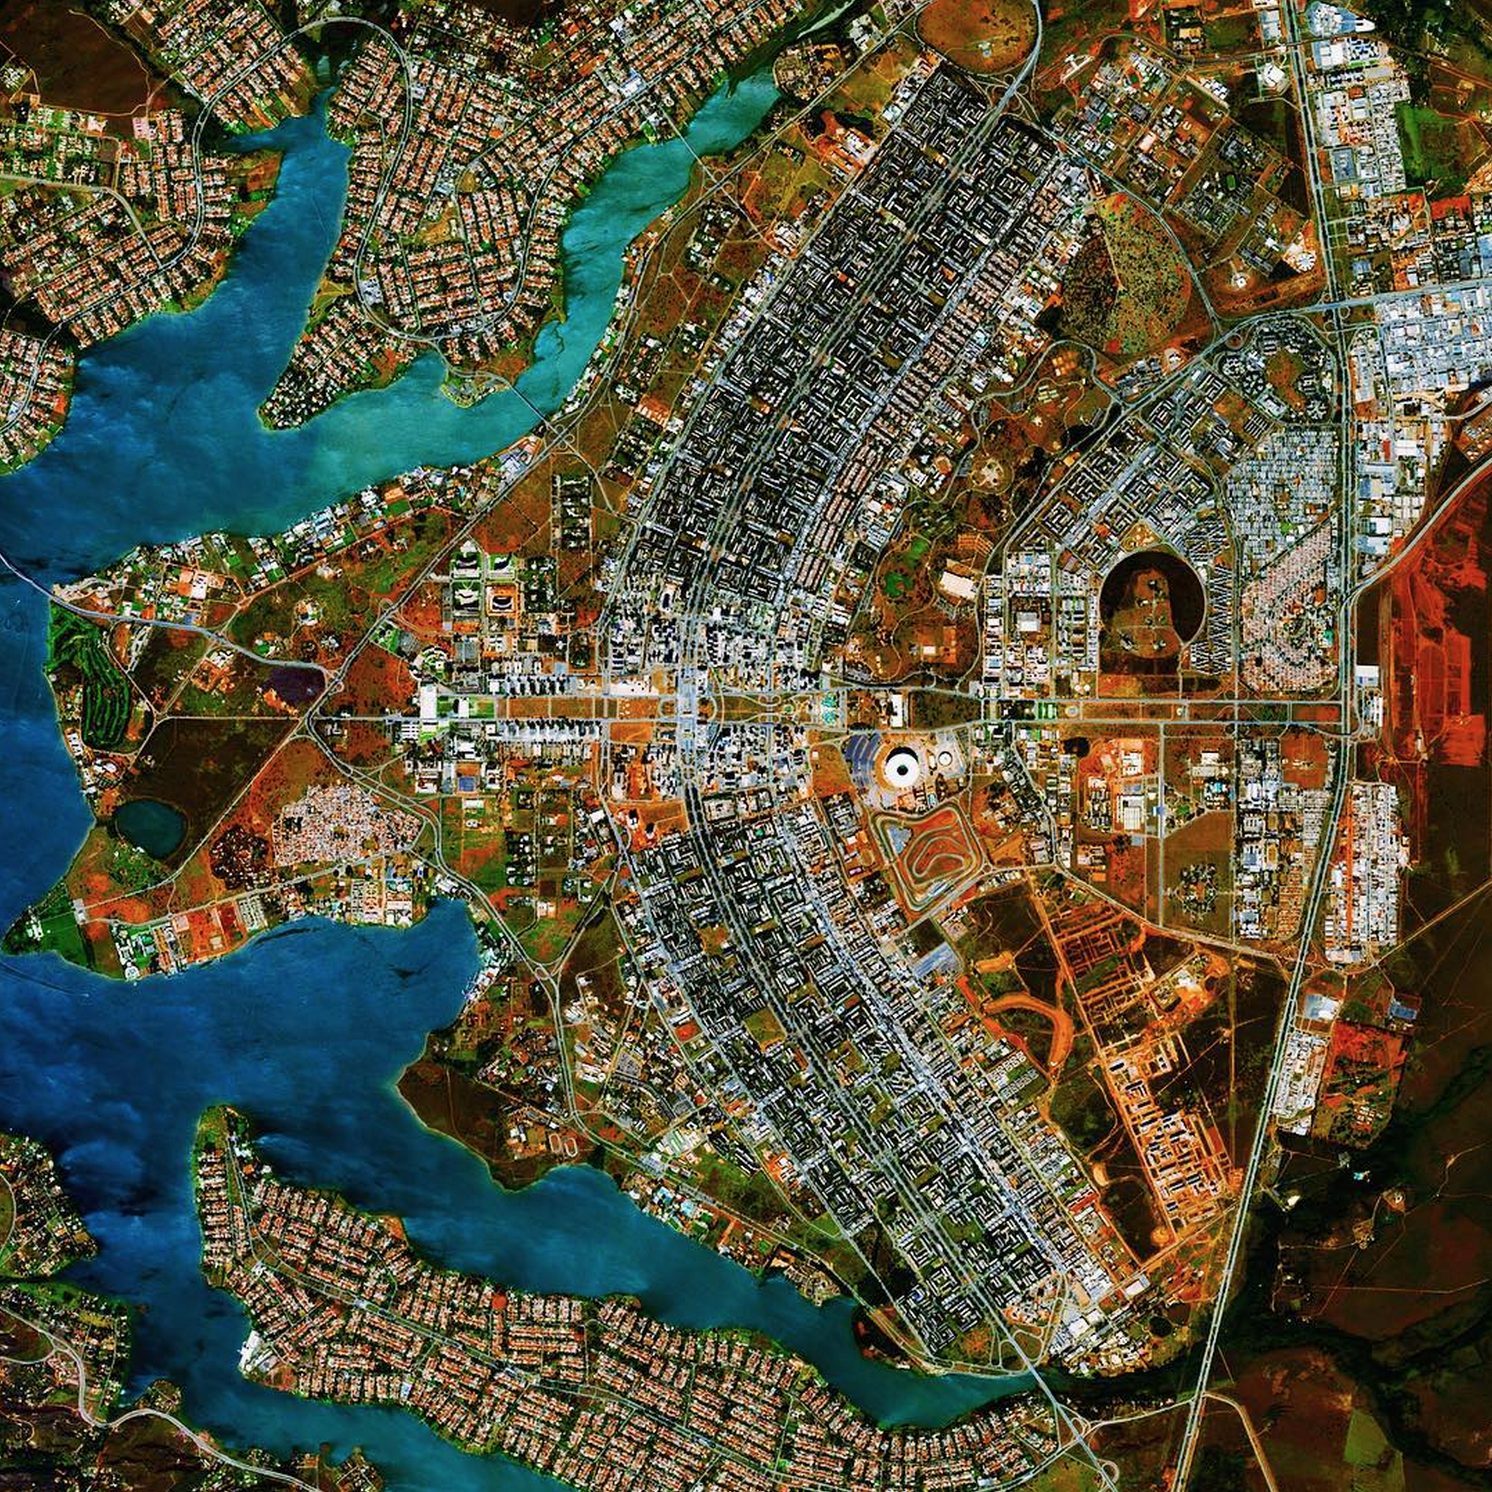 """To celebrate our 125K follower milestone, we're doing a PRINT GIVEAWAY from our Printshop on Instagram! On Thursday, we'll announce a winner who will receive a 10"""" print of their choice, perhaps they'll pick this view of Brasilia, Brazil!  Enter the contest here: https://instagram.com/p/8ddkw7CUGw/   The city was founded on April 21, 1960 in order to move the capital from Rio de Janeiro to a more central location within Brazil. The design - resembling an airplane from above - was developed by Lúcio Costa and prominently features the modernist buildings of the celebrated architect Oscar Niemeyer at its center."""